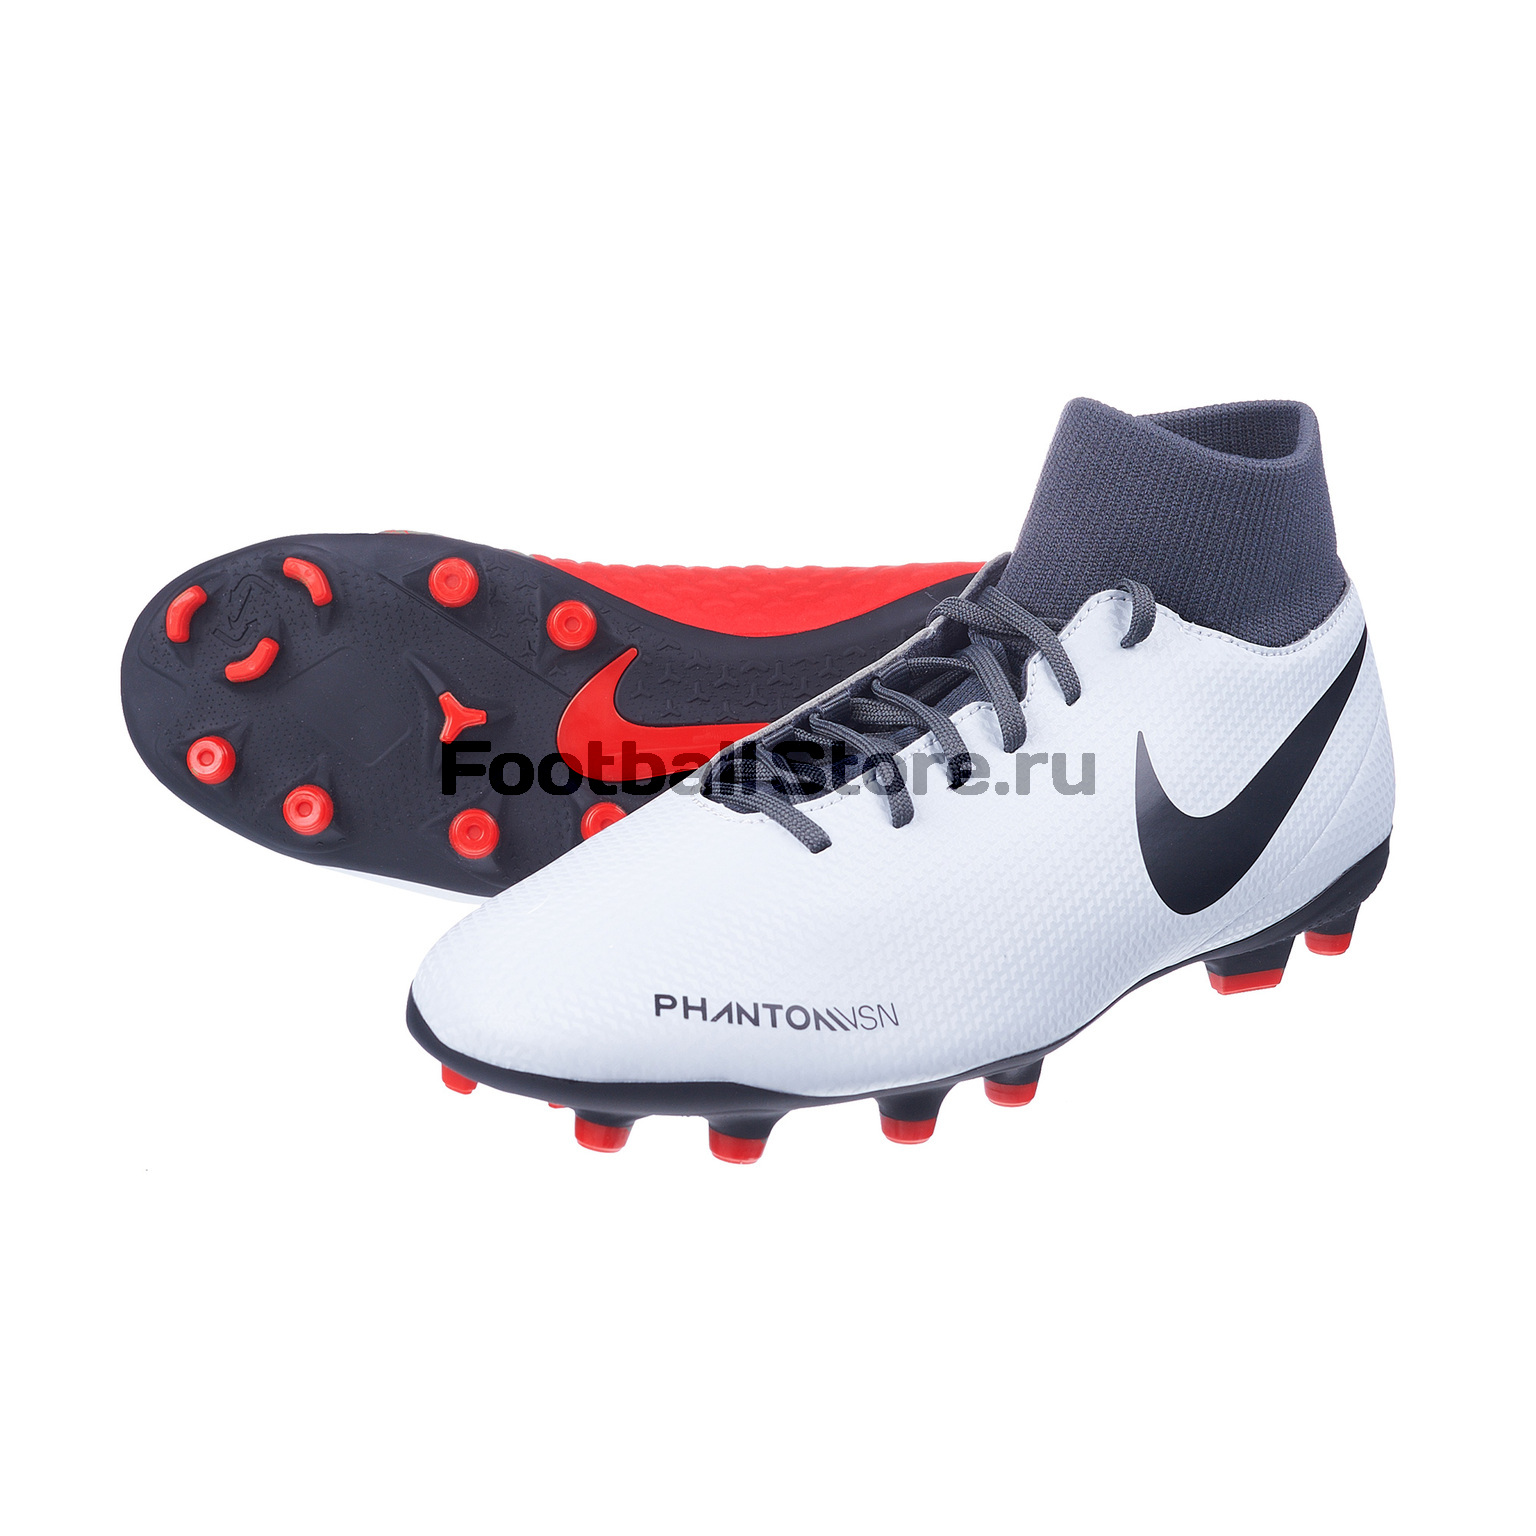 Бутсы Nike Phantom Vision Club DF FG/MG AJ6959-060 бутсы nike mercurial victory iii fg 509128 800